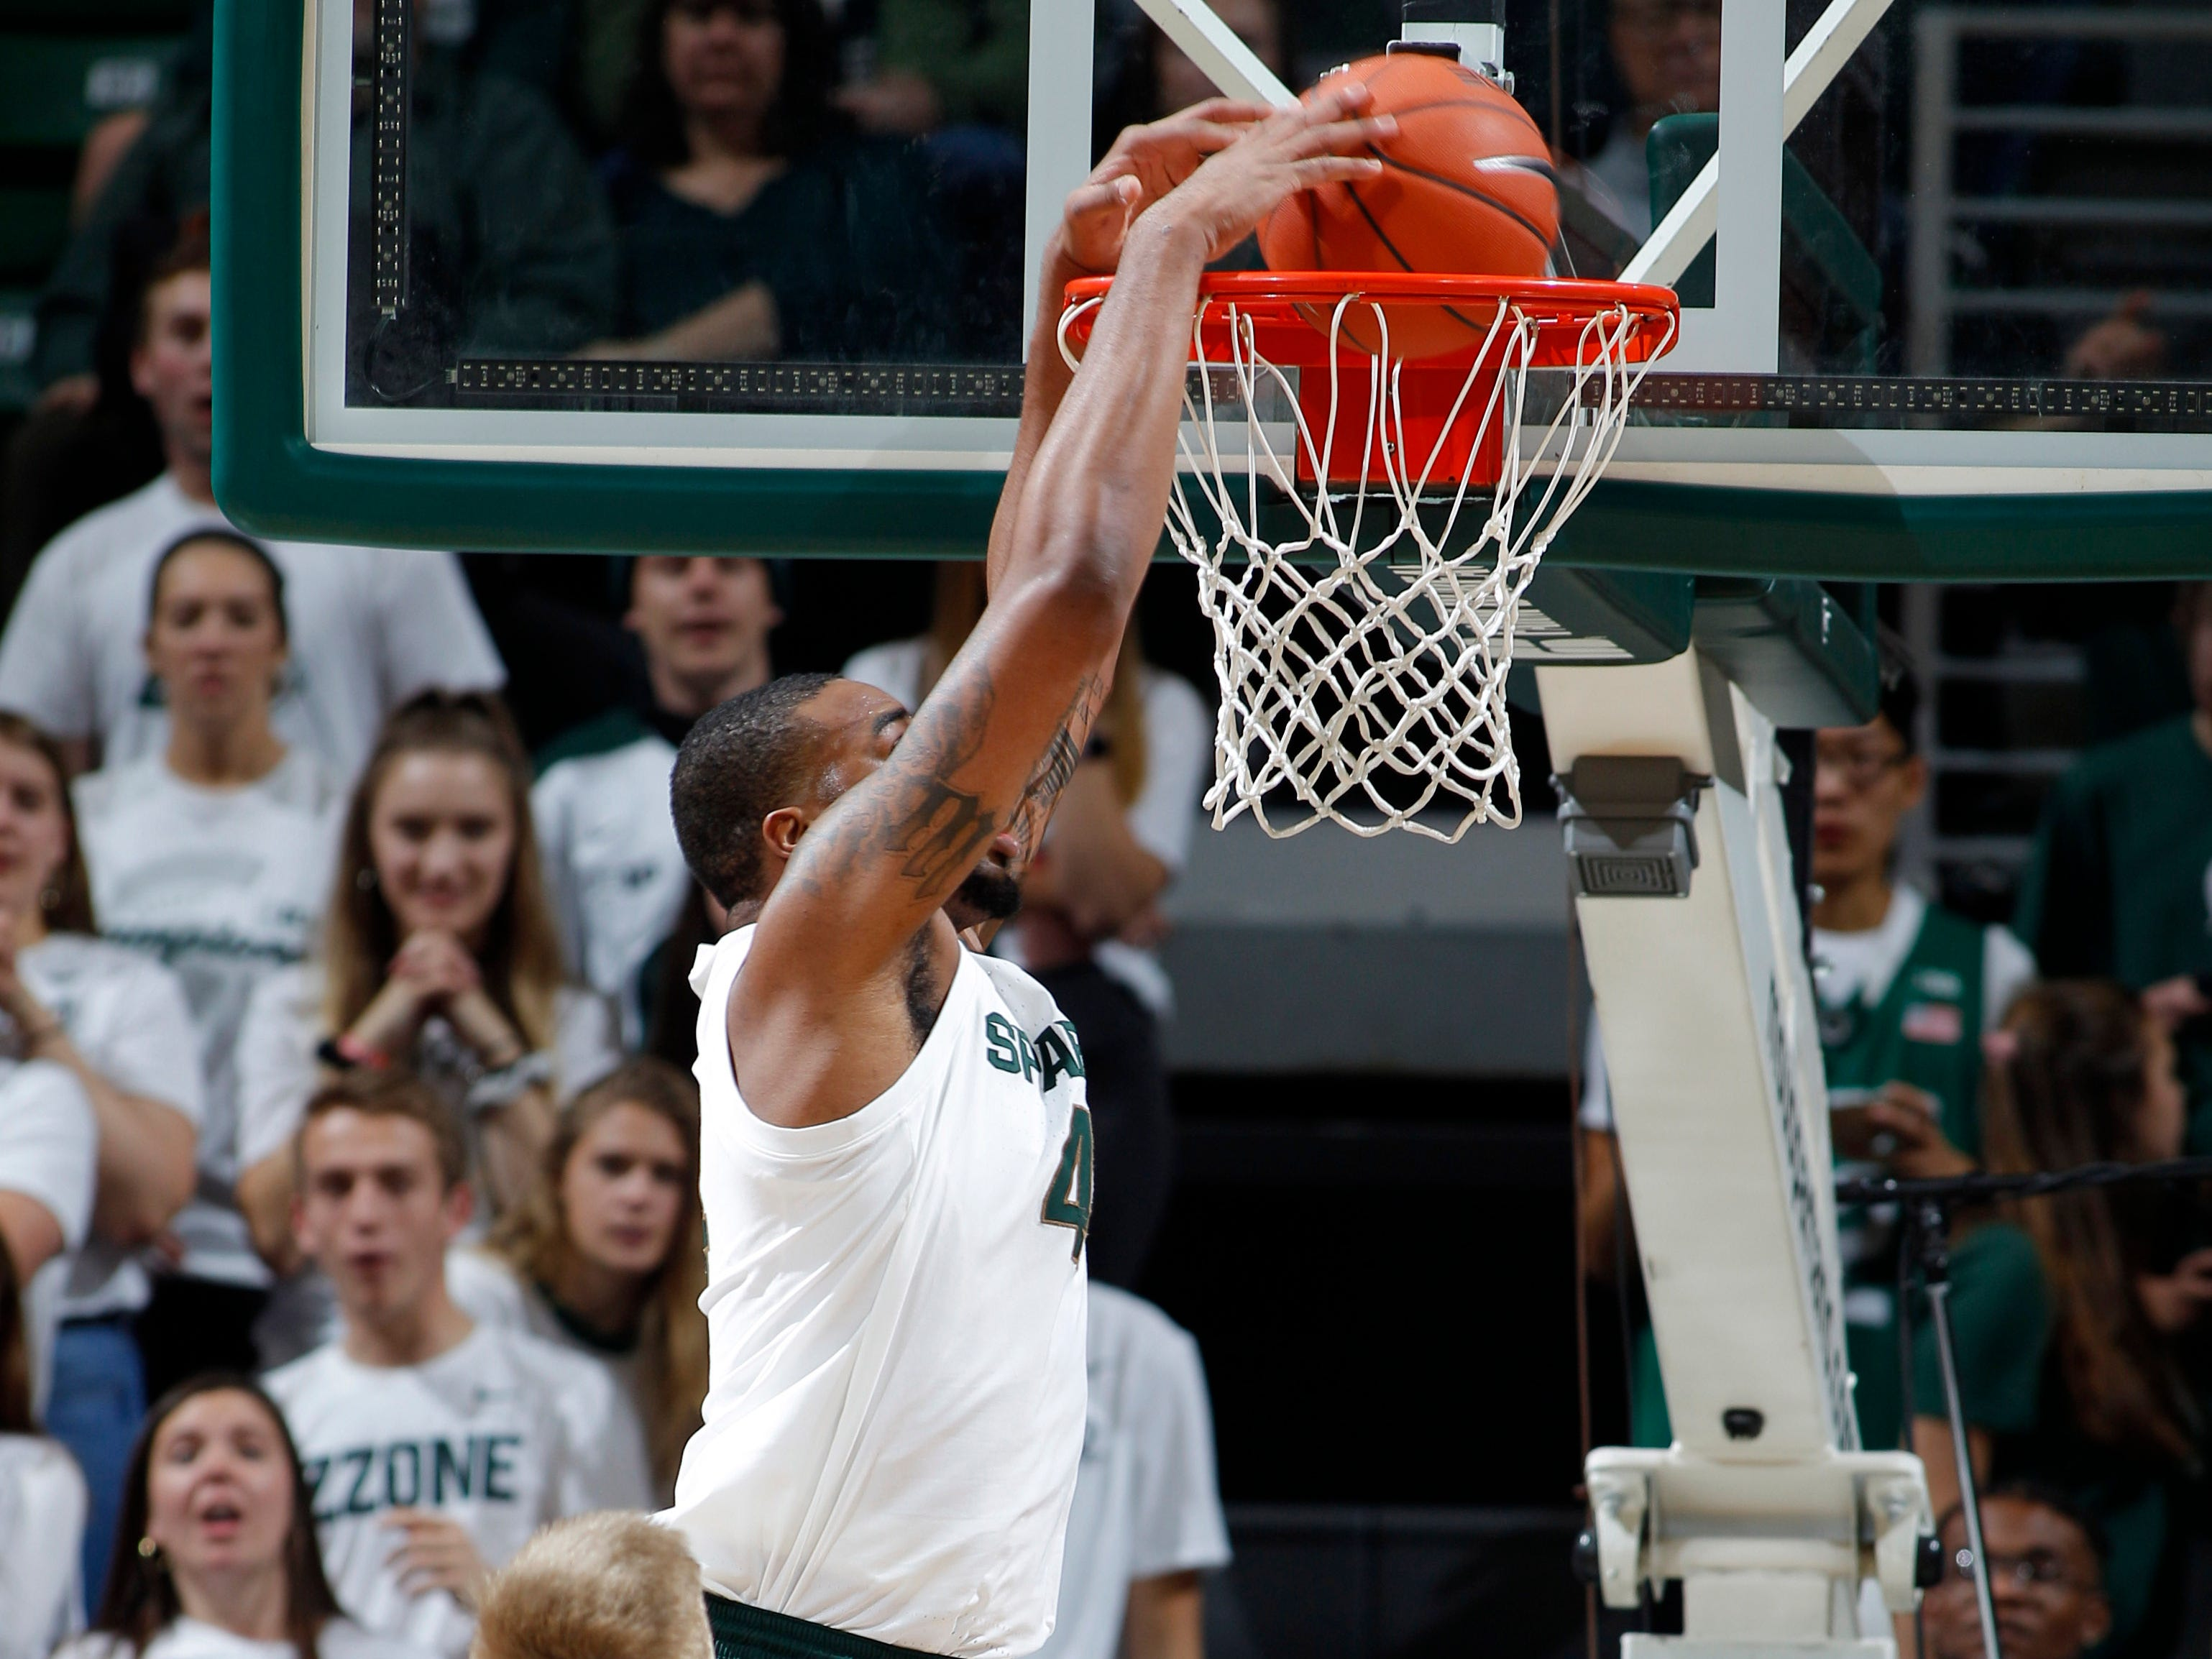 Michigan State's Nick Ward dunks against Northern Michigan, Tuesday, Oct. 30, 2018, in East Lansing, Mich.